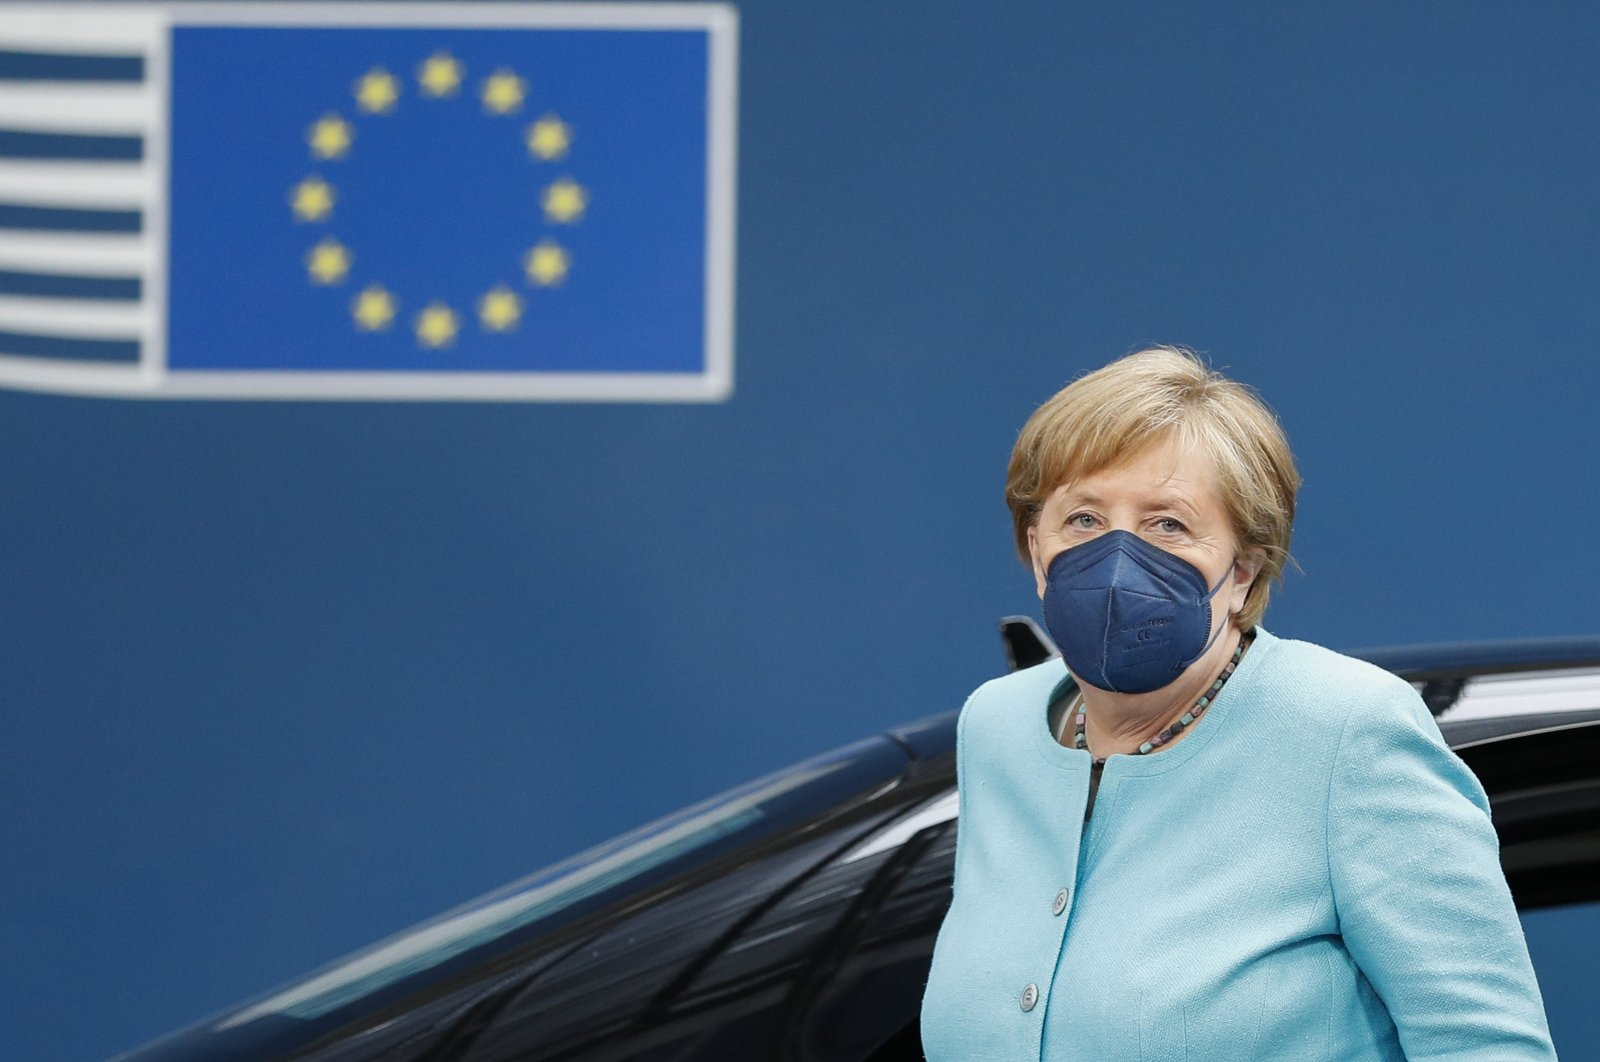 Germany's Chancellor Angela Merkel arrives for an EU summit at the European Council building in Brussels, Belgium, Thursday, June 24, 2021. (AP Photo)